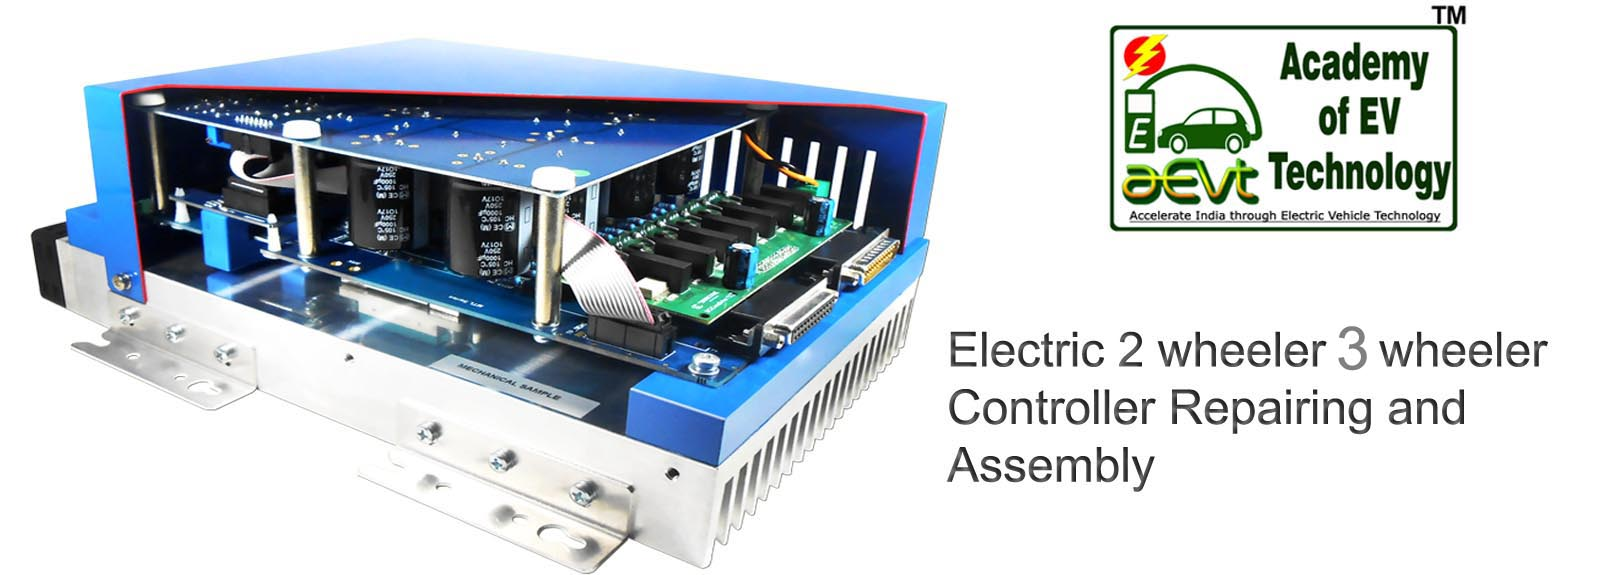 Electric vehicle Repairing Assembly